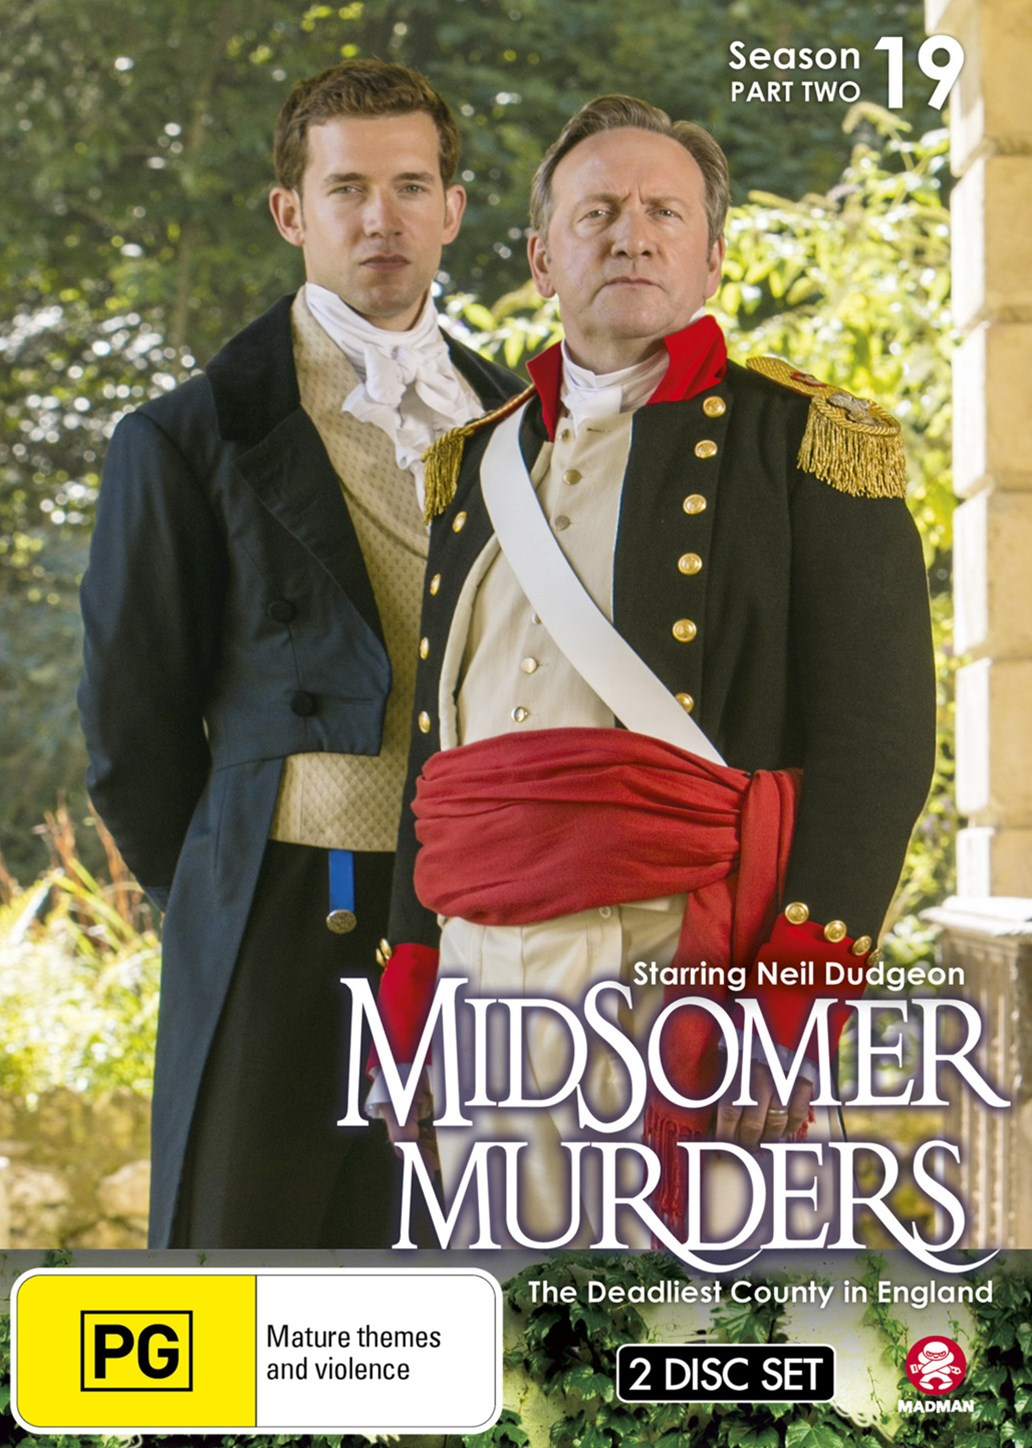 Midsomer Murders Season 19 (Part 2)